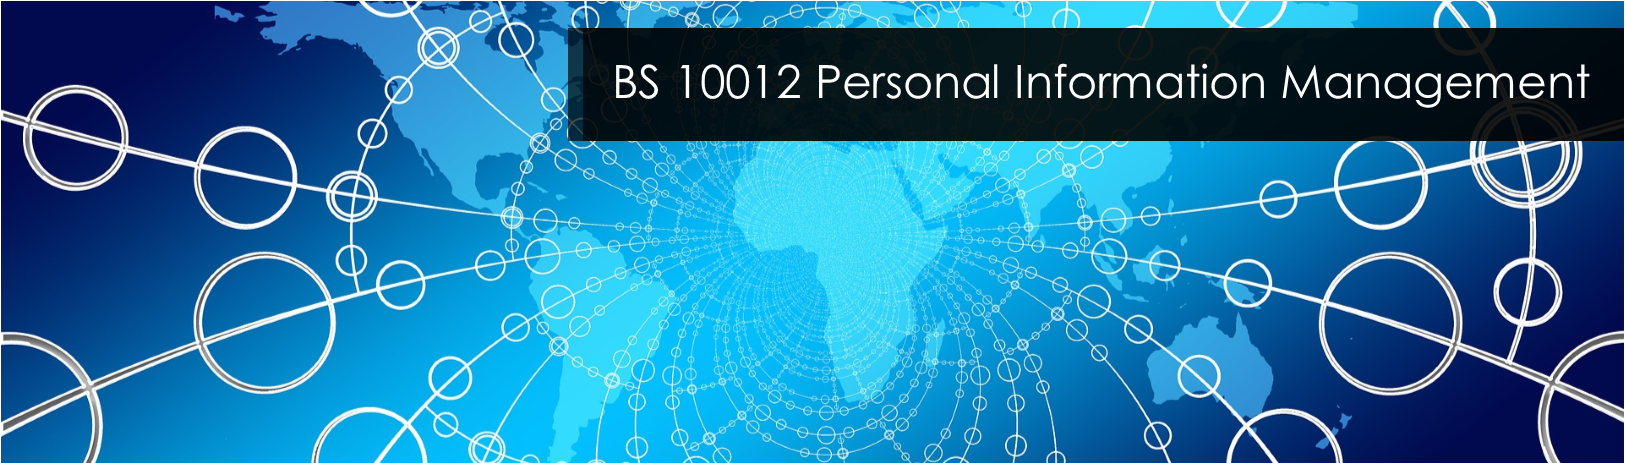 BS 10012 Personal Information Management - Blackmores consultancy